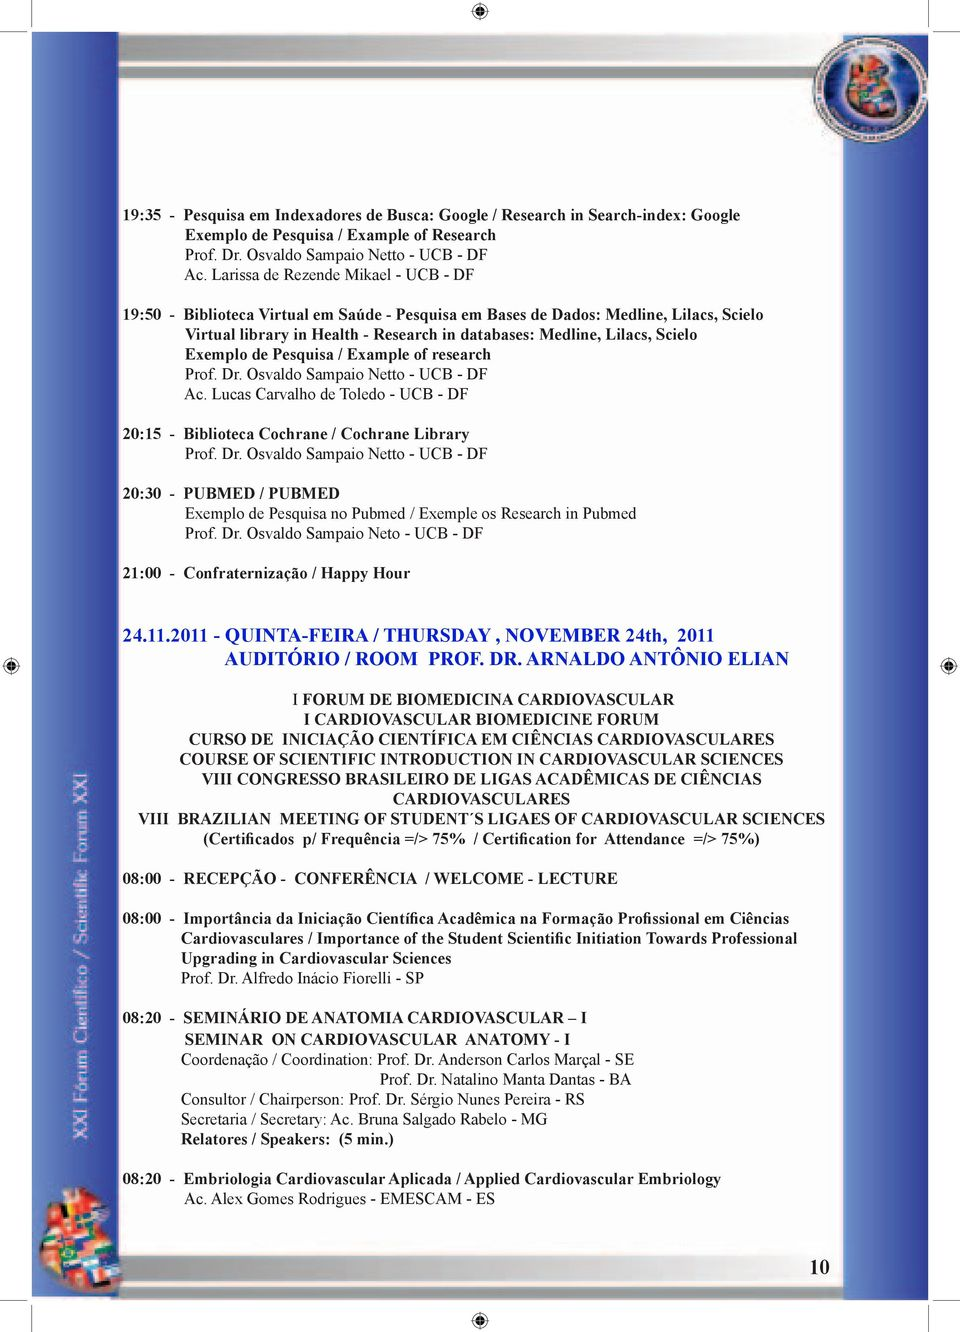 Scielo Exemplo de Pesquisa / Example of research Prof. Dr. Osvaldo Sampaio Netto - UCB - DF Ac. Lucas Carvalho de Toledo - UCB - DF 20:15 - Biblioteca Cochrane / Cochrane Library Prof. Dr. Osvaldo Sampaio Netto - UCB - DF 20:30 - PUBMED / PUBMED Exemplo de Pesquisa no Pubmed / Exemple os Research in Pubmed Prof.